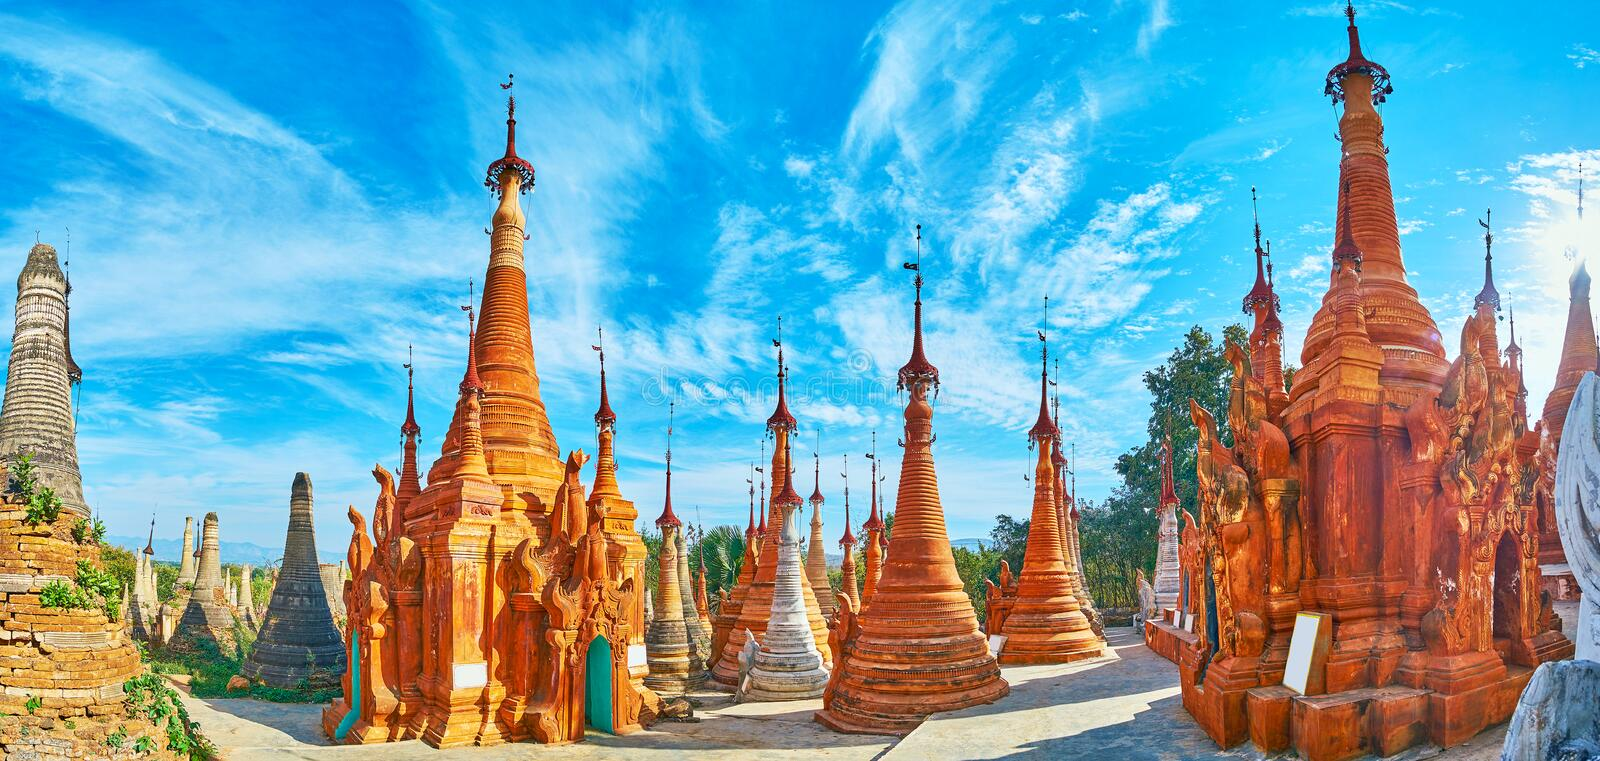 Among the ochre stupas of Nyaung Ohak, Indein, Inle Lake, Myanmar. Nyaung Ohak archaeological site is the unique place on Inle Lake with outstanding ancient royalty free stock images